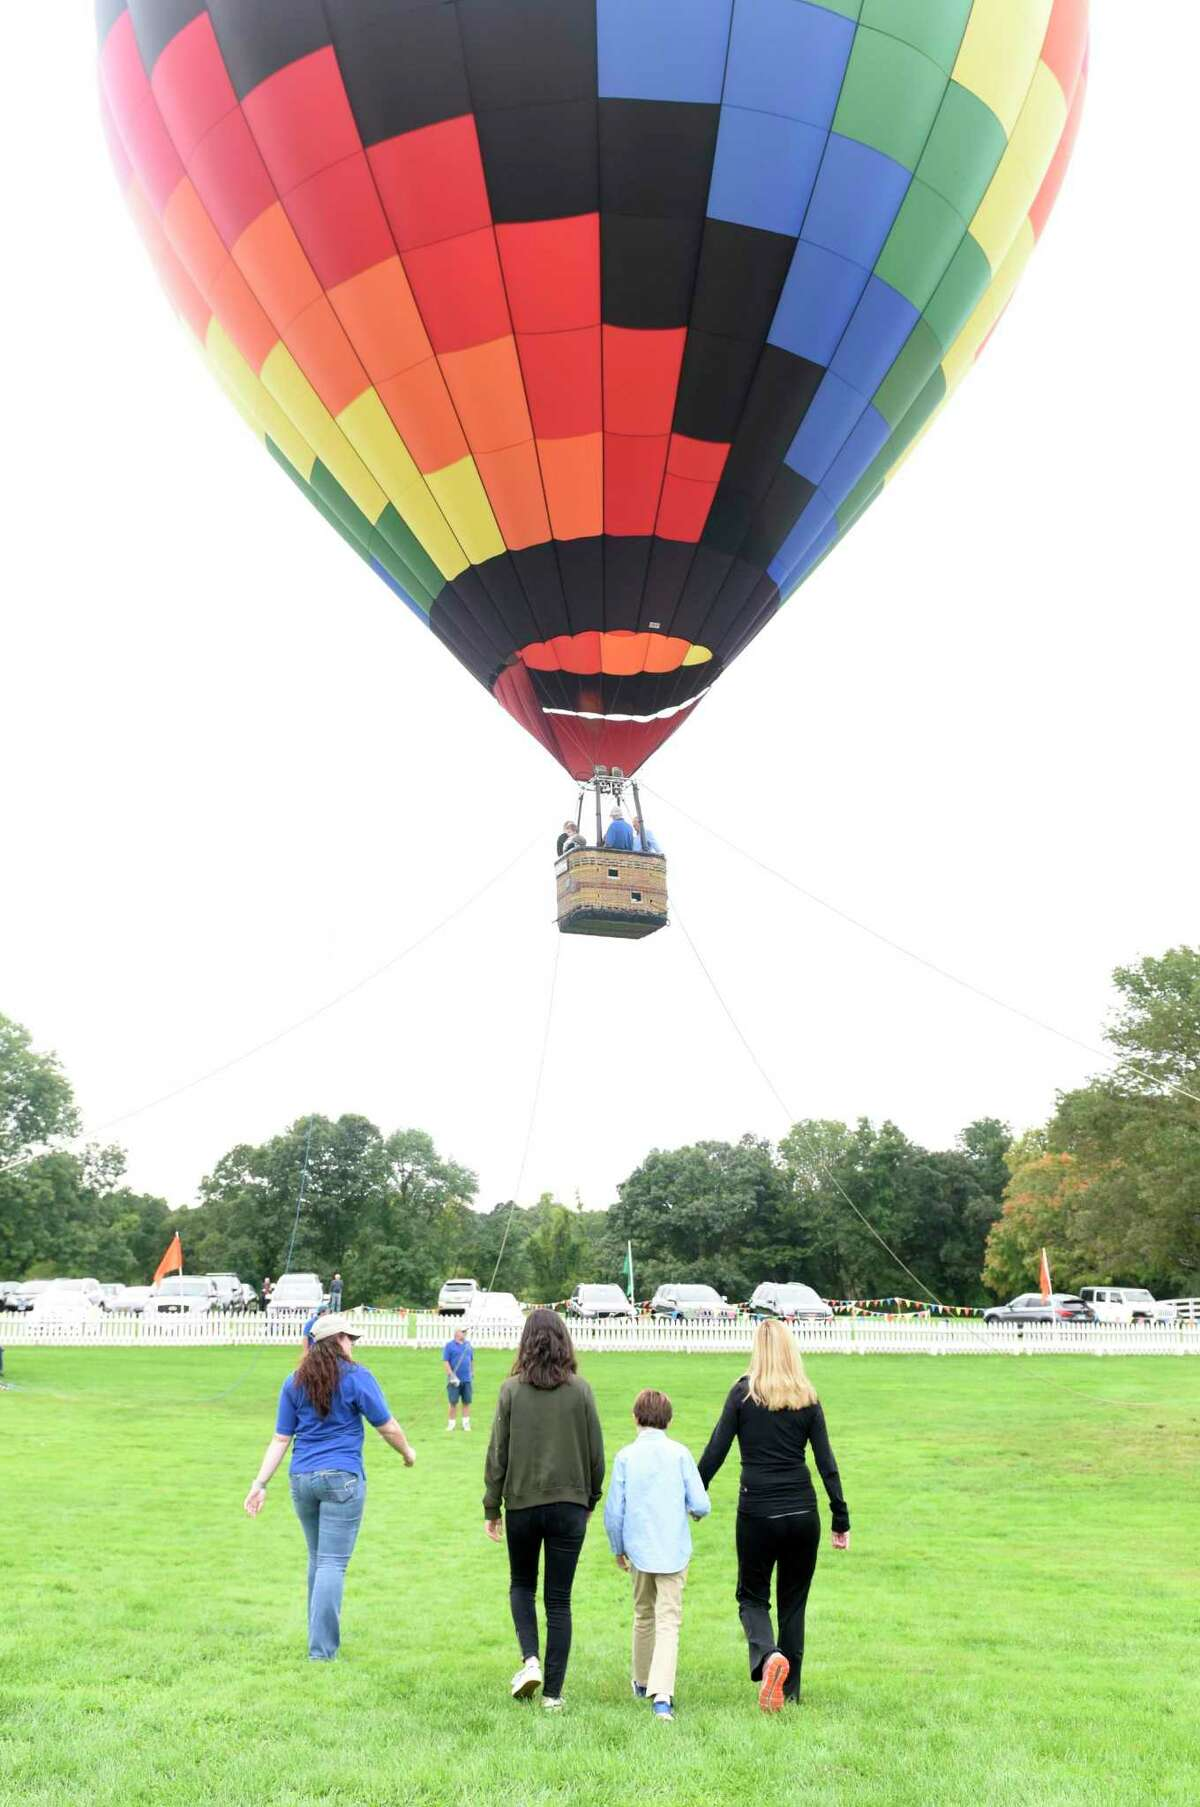 Mick Murphy said he's formed many friendships he might not have otherwise had through flying hot air balloons.